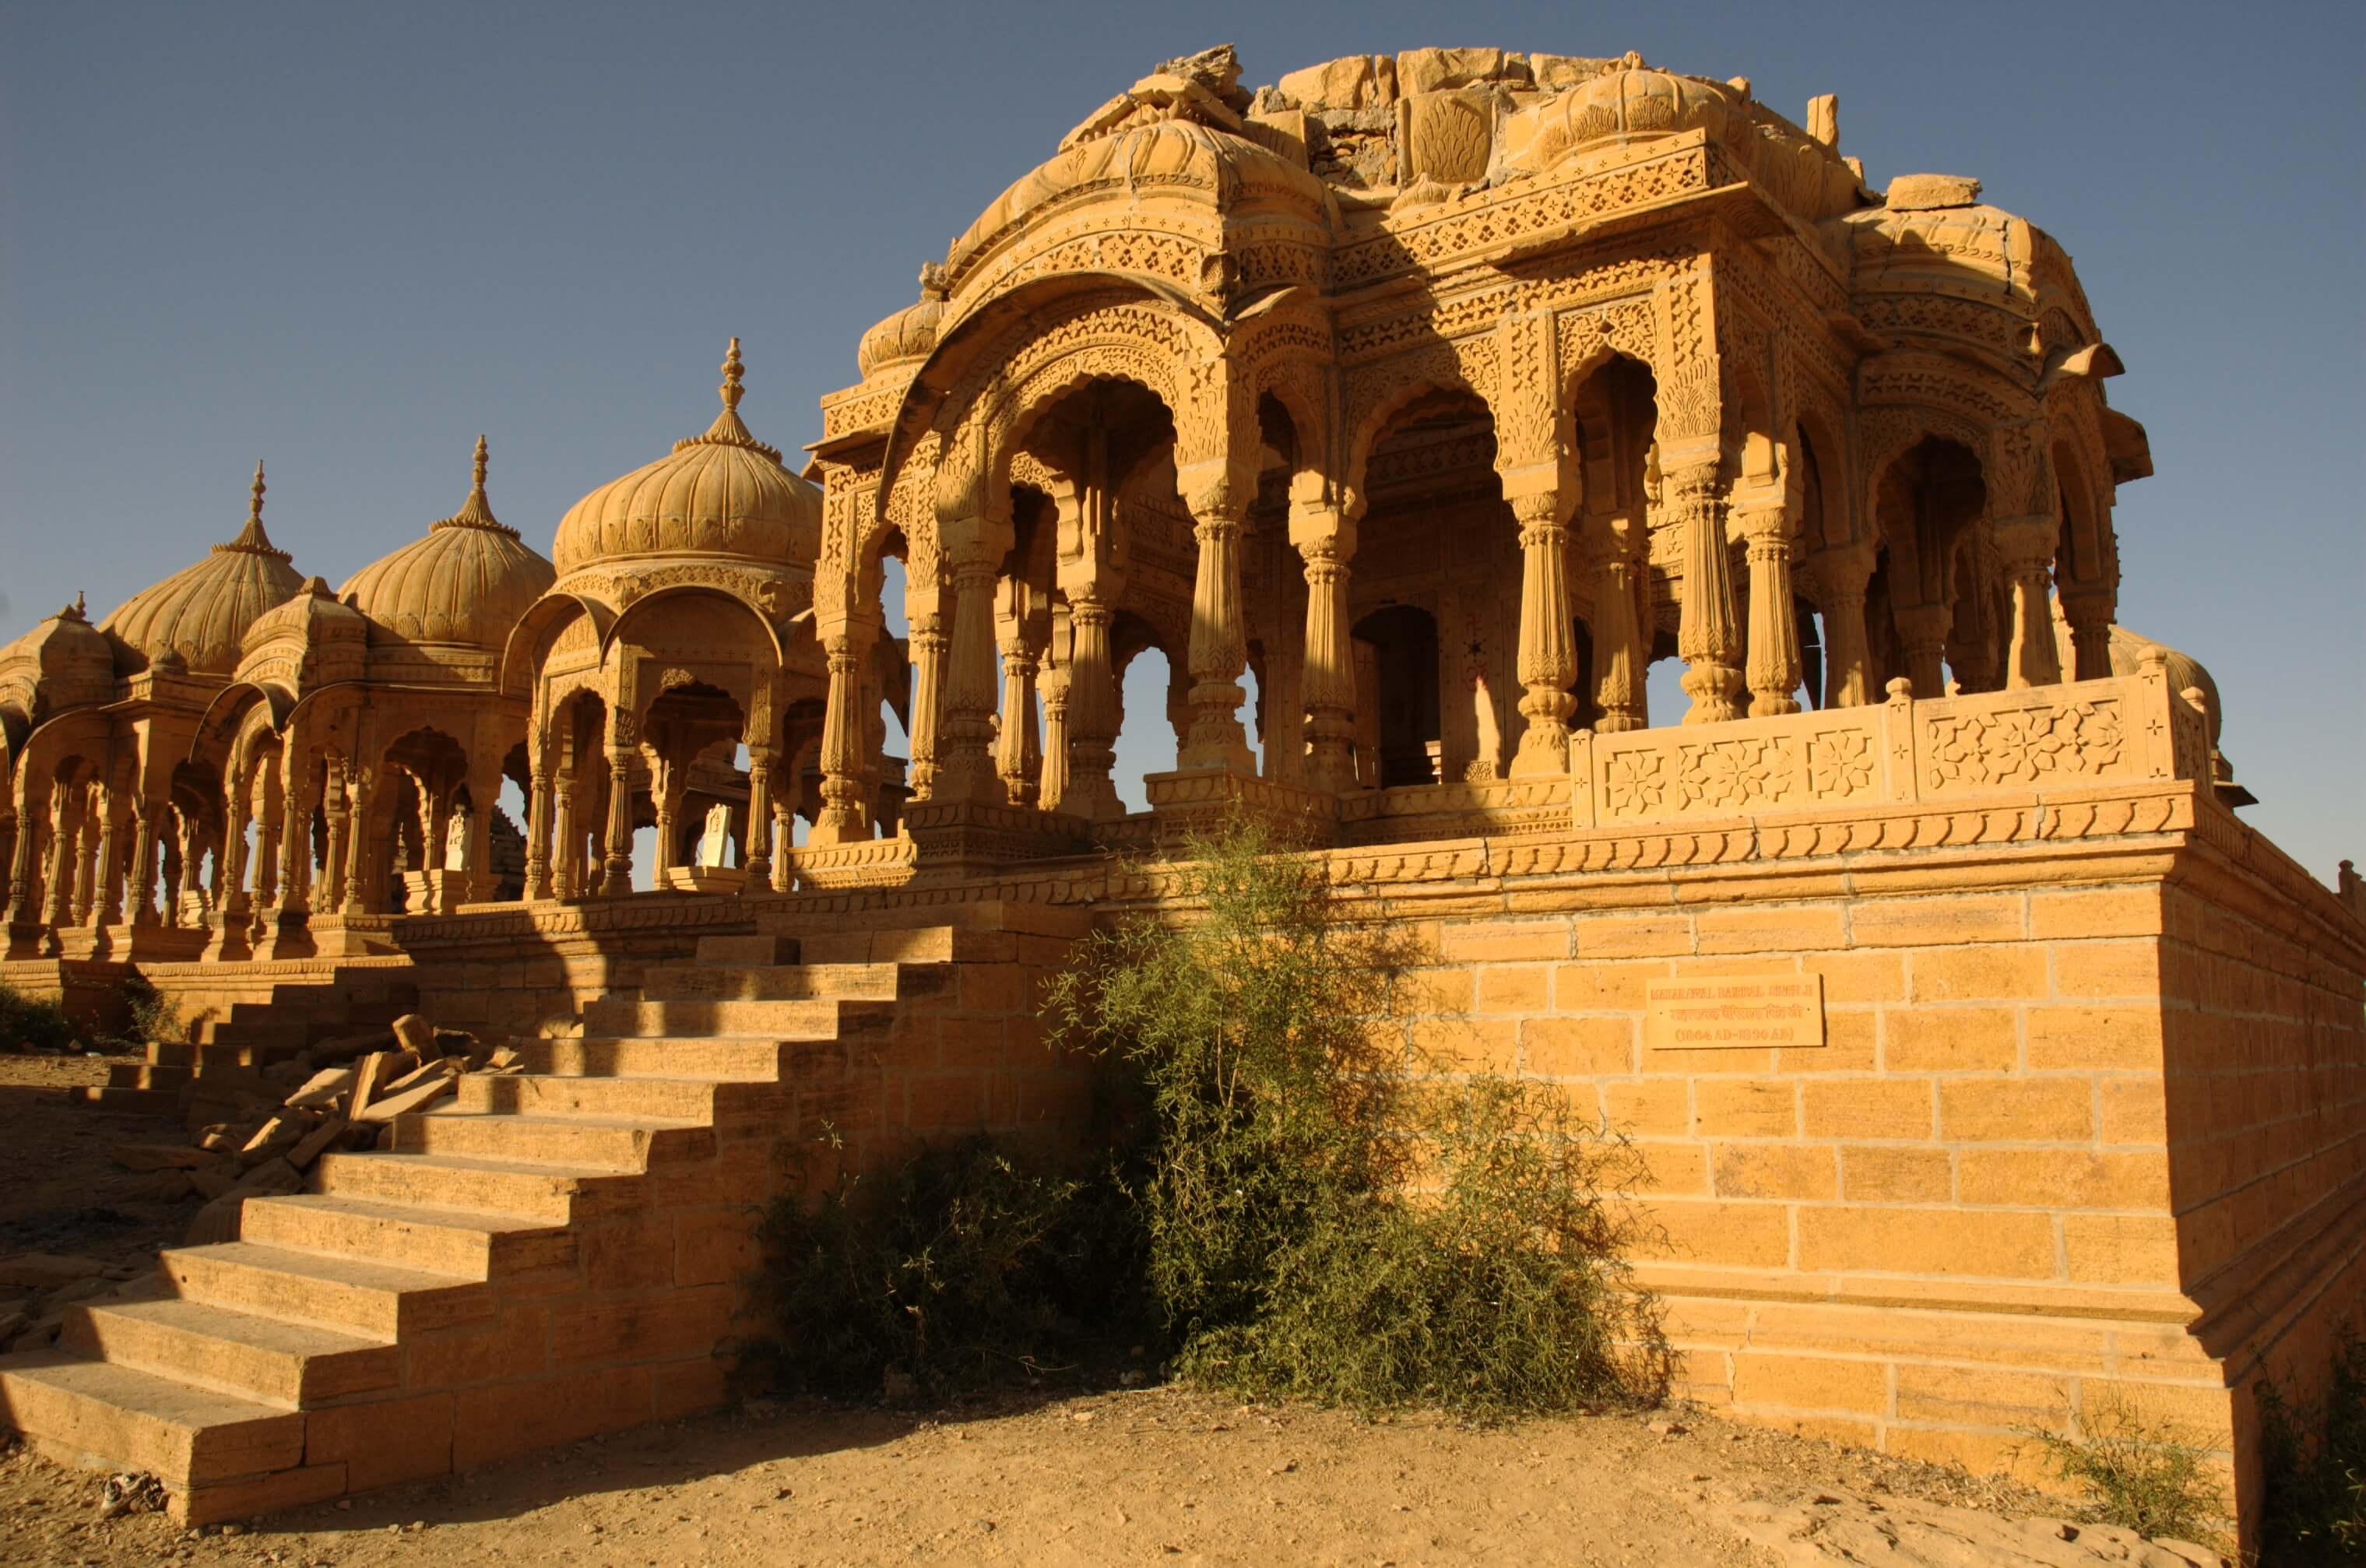 a beautiful fort in Jaisalmer